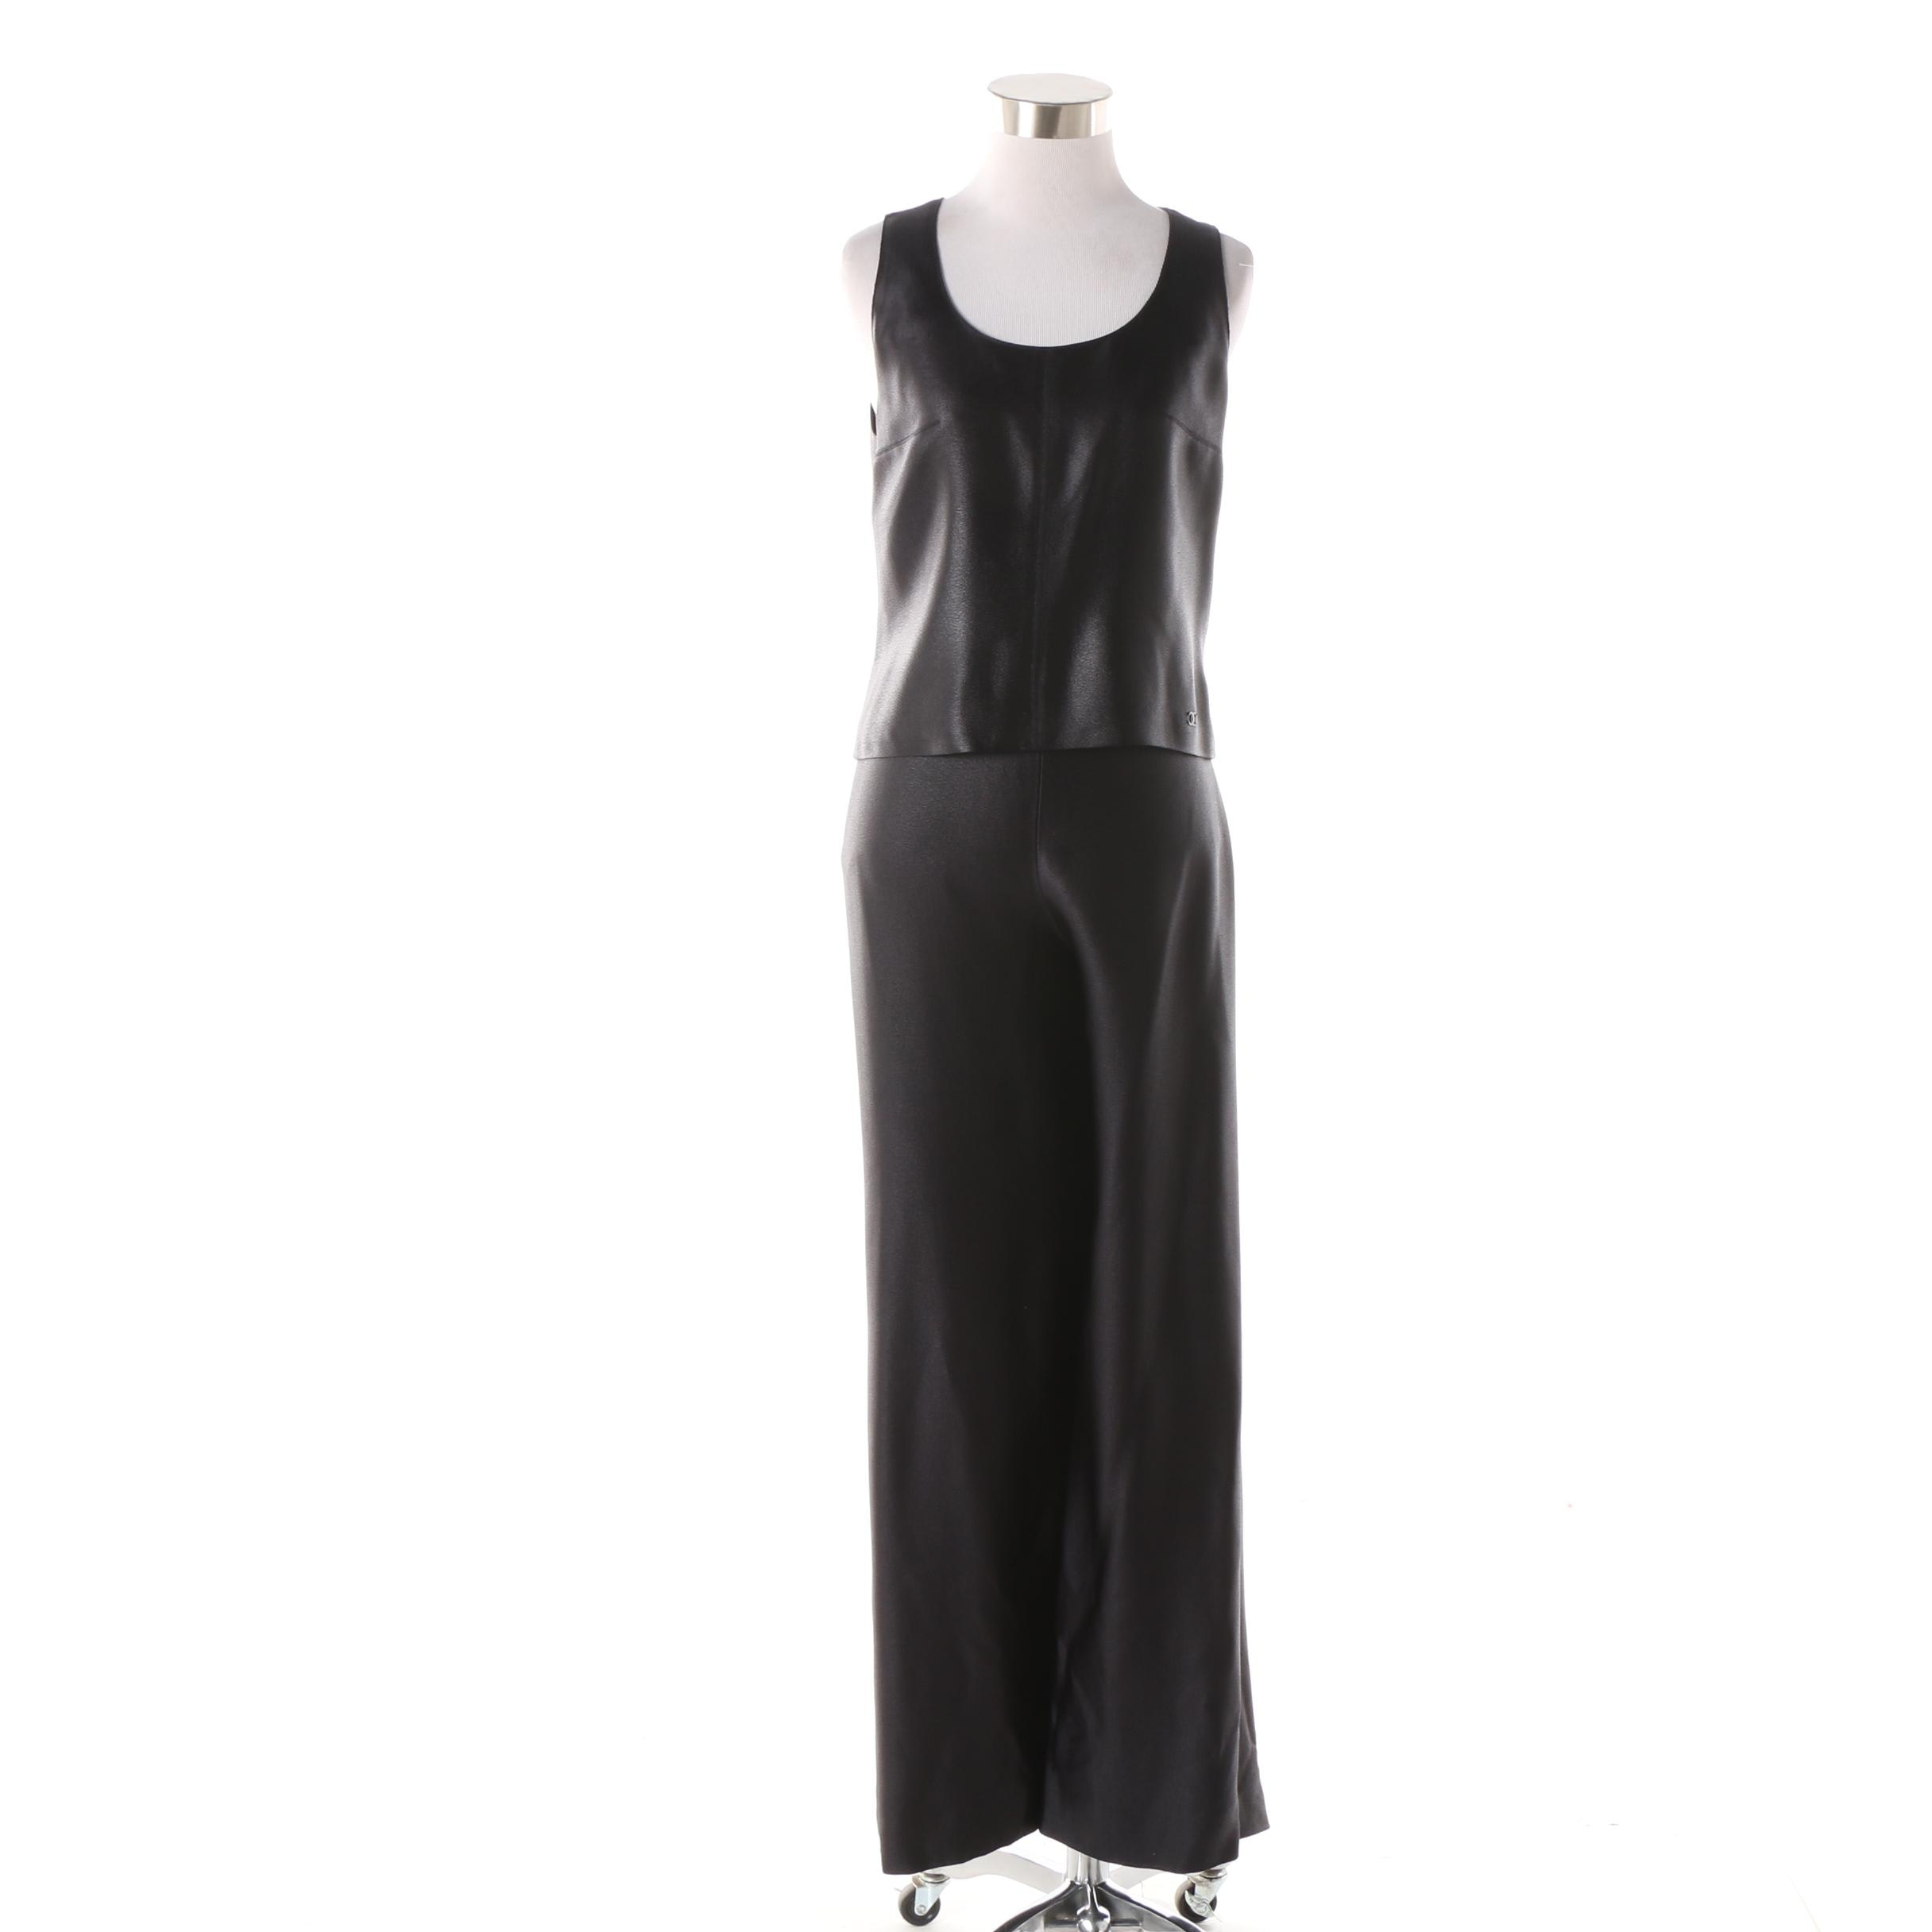 Chanel Sleeveless Black Top and Matching Wide-Legged Pants